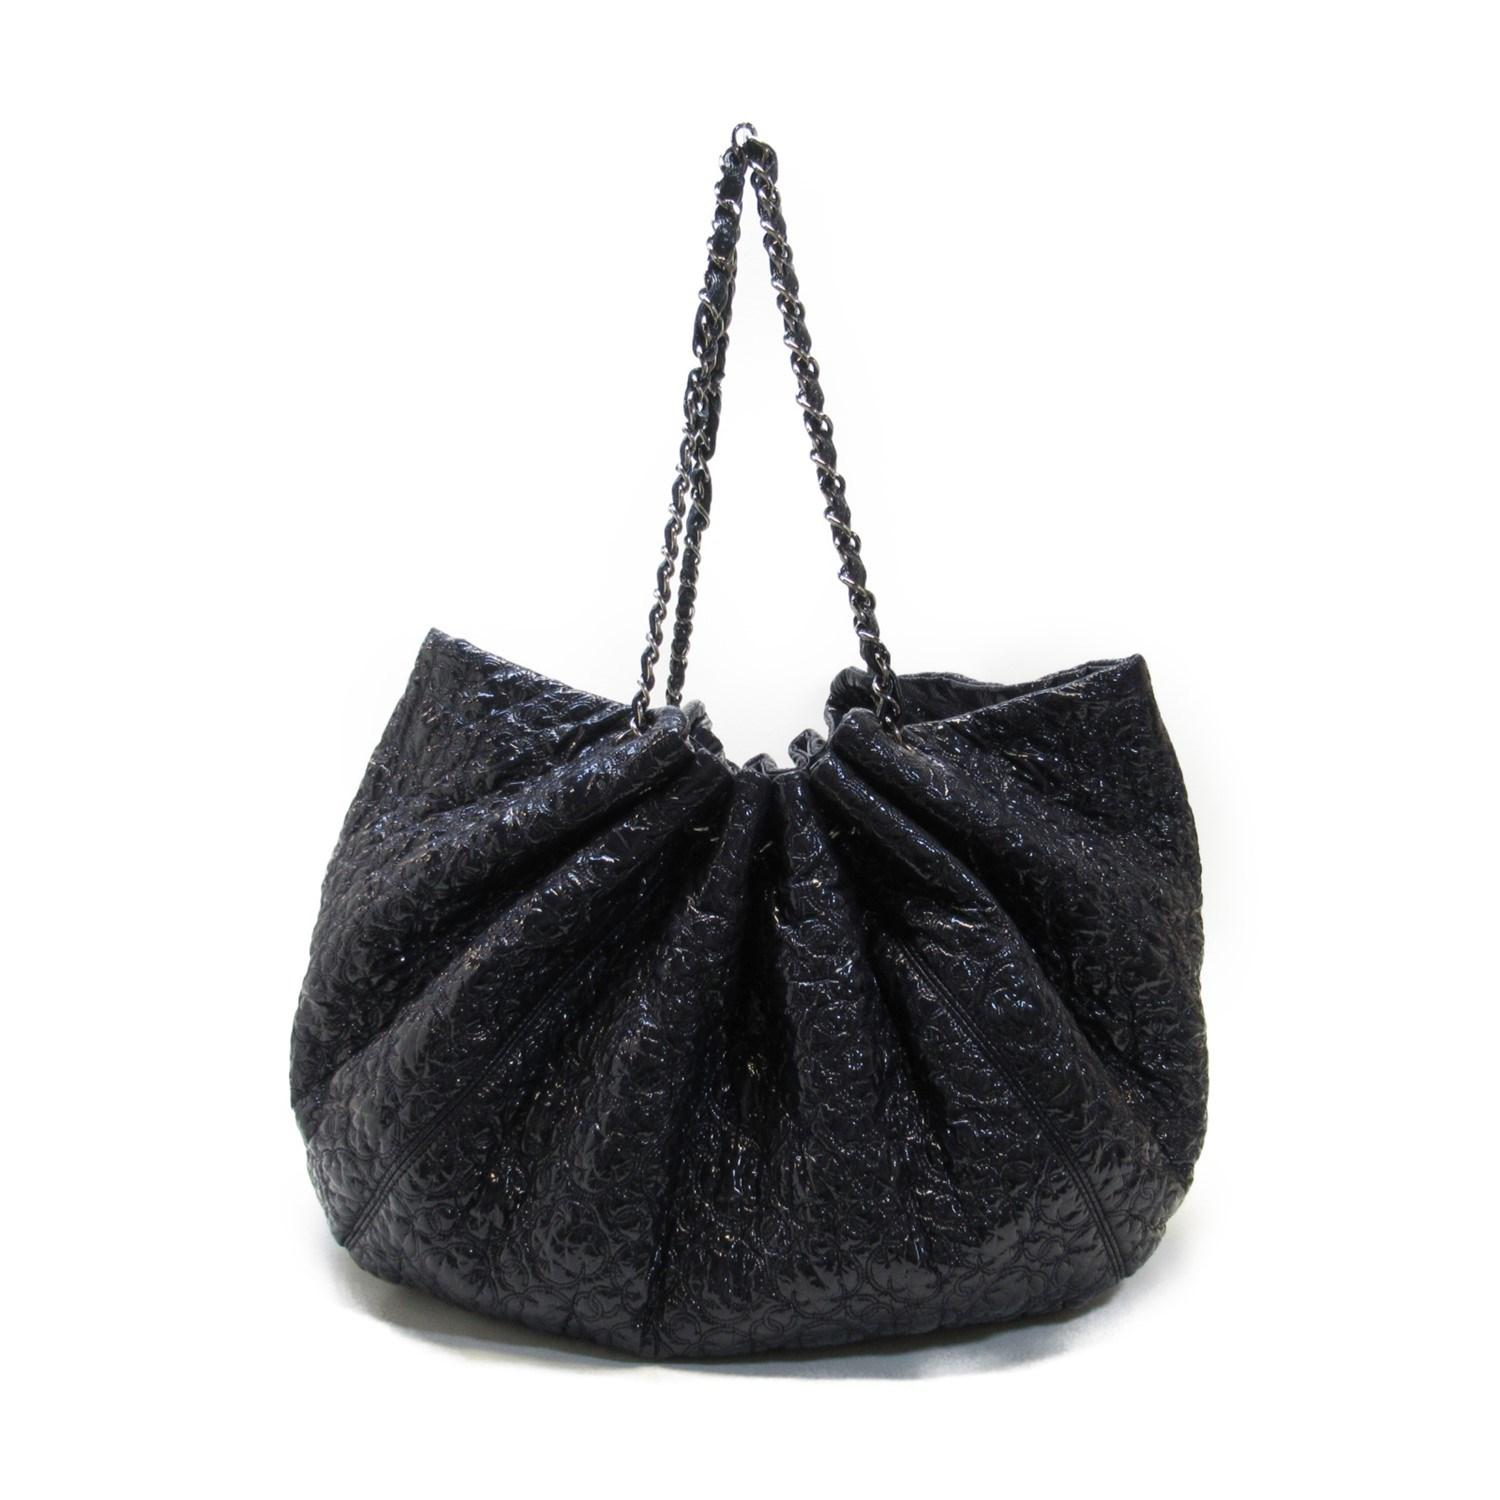 2603ef542400 Chanel - Auth Large Shoulder Tote Bag Black Patent Leather Used Vintage -  Lyst. View fullscreen